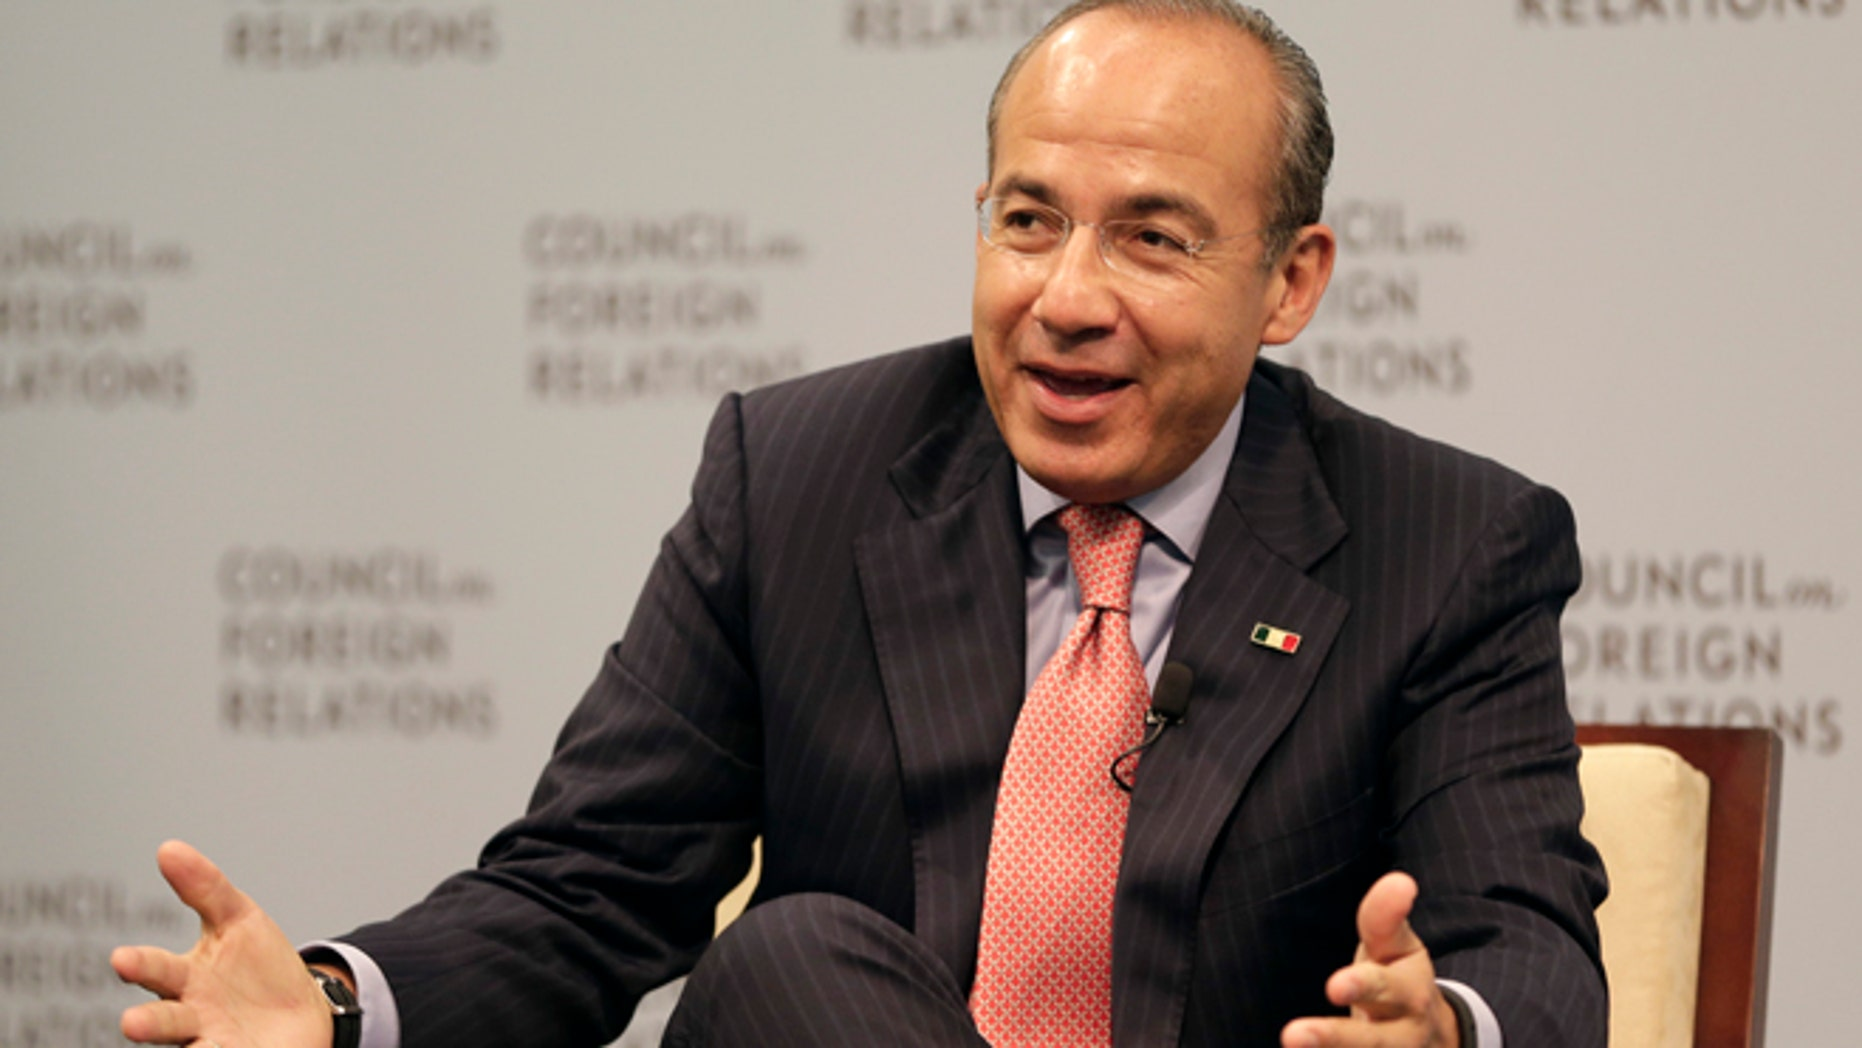 Mexican President Felipe Calderon answers a questions after speaking at the Council on Foreign Relations in Washington, Monday, Sept. 24, 2012. (AP Photo/Jacquelyn Martin)